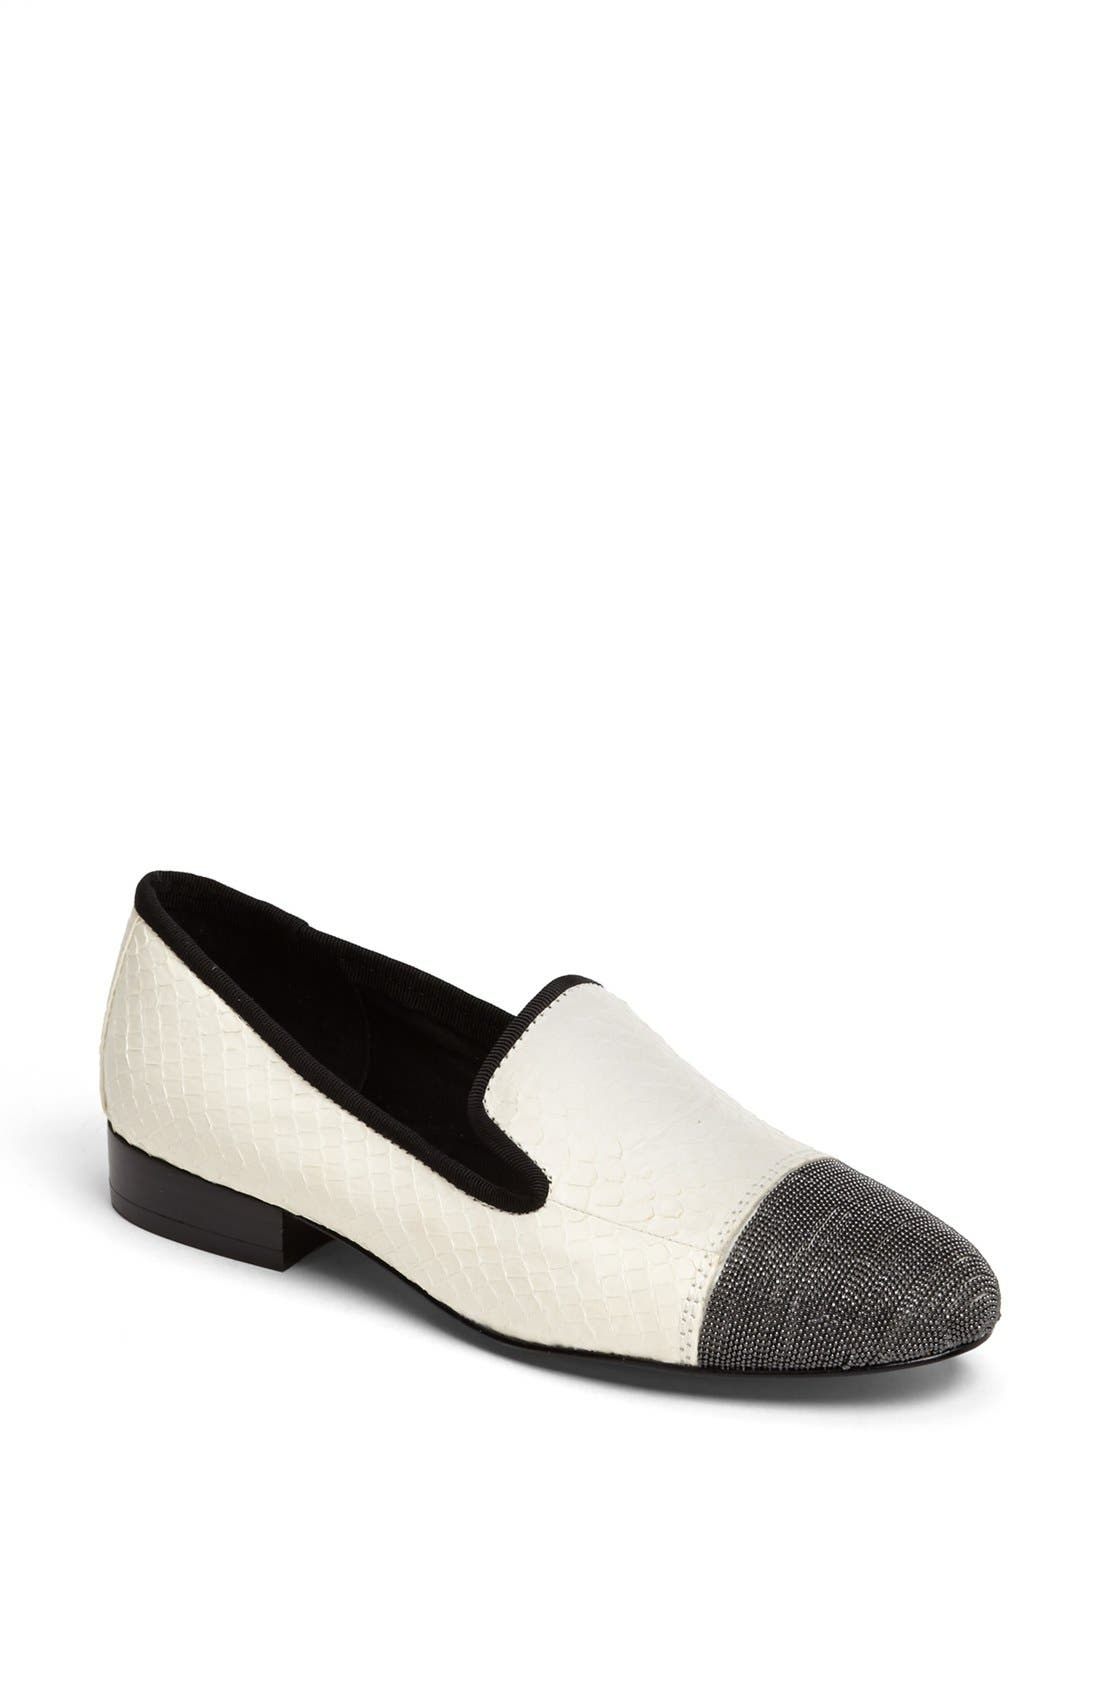 Alternate Image 1 Selected - Dolce Vita Loafer Flat